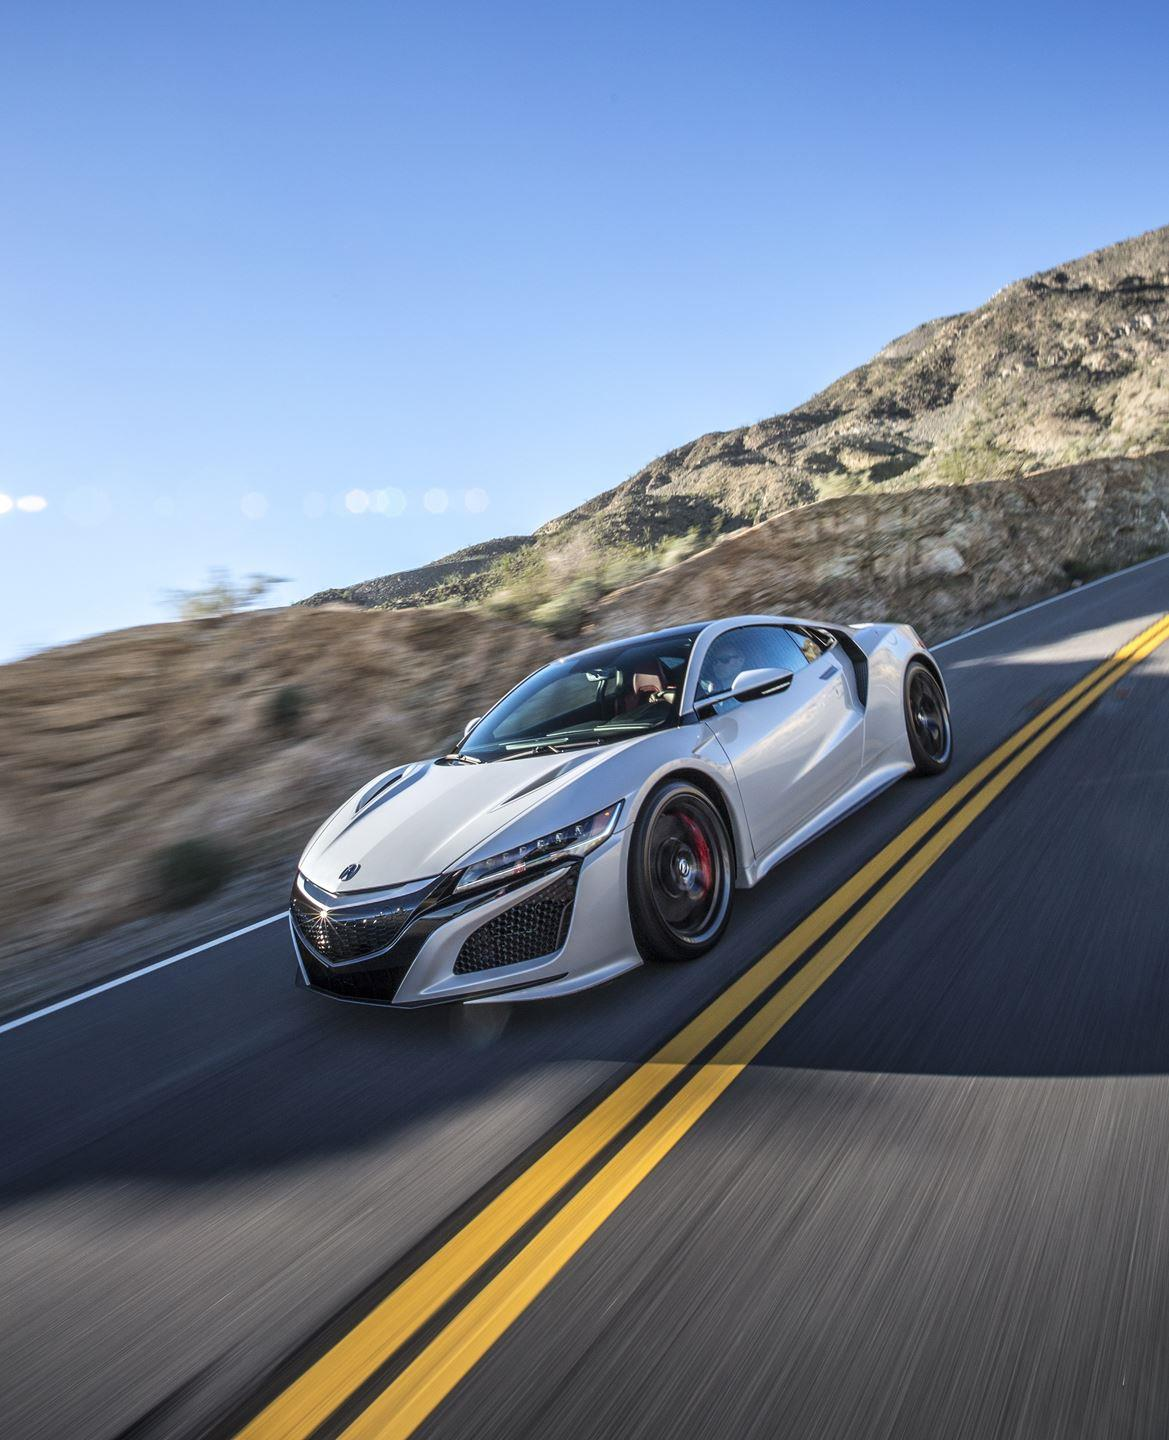 2018 Acura NSX Wallpapers [HD]